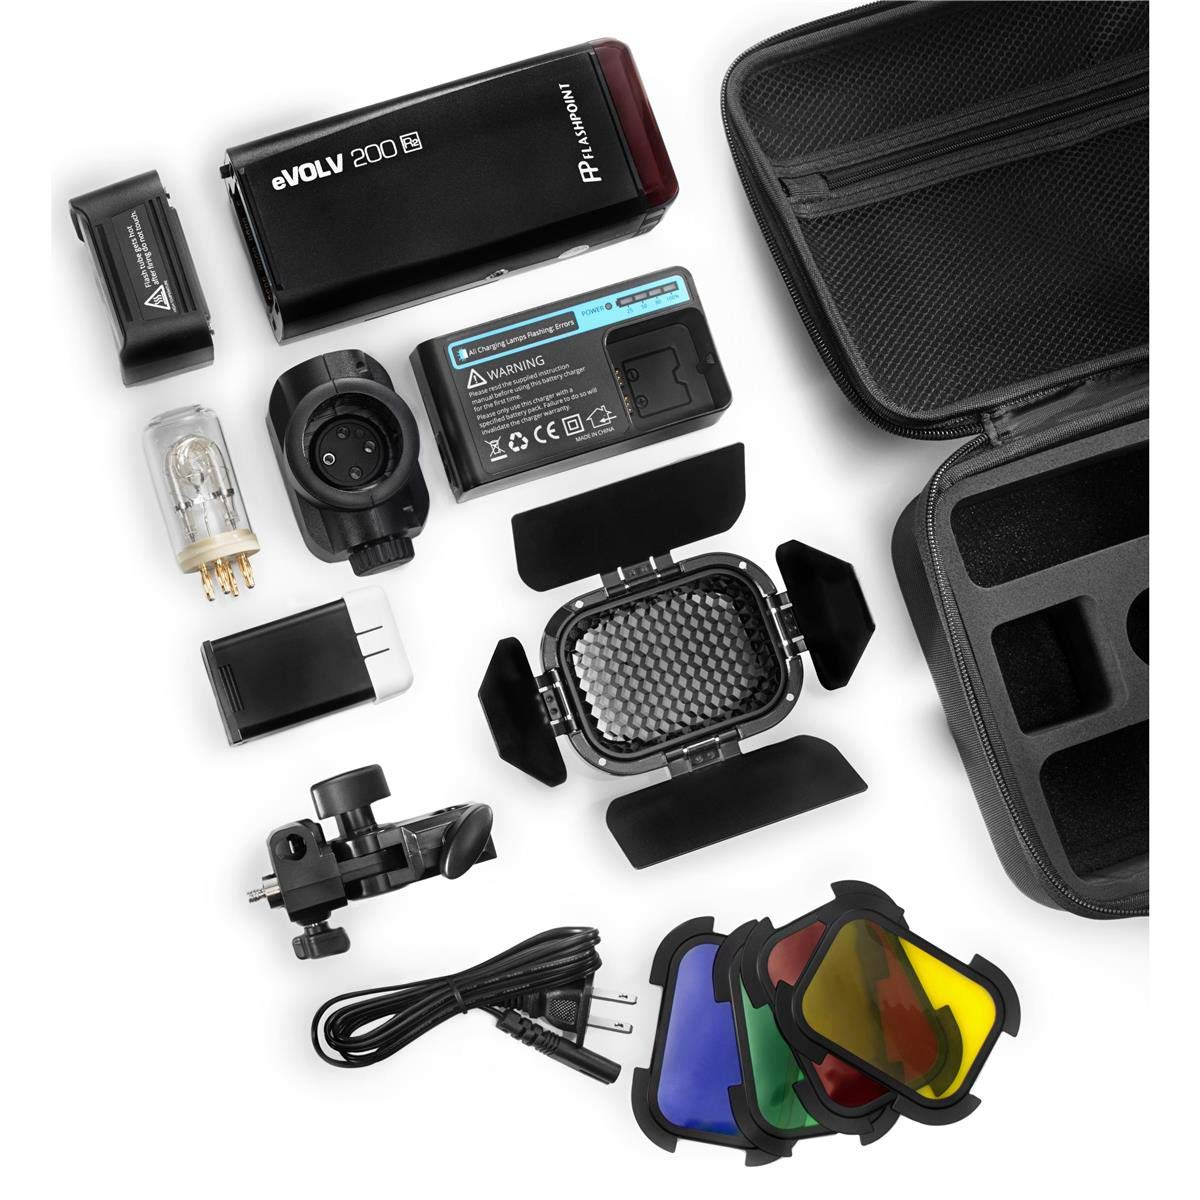 Flashpoint eVOLV 200 R2 TTL Pocket Flash with Barndoor Kit by Flashpoint